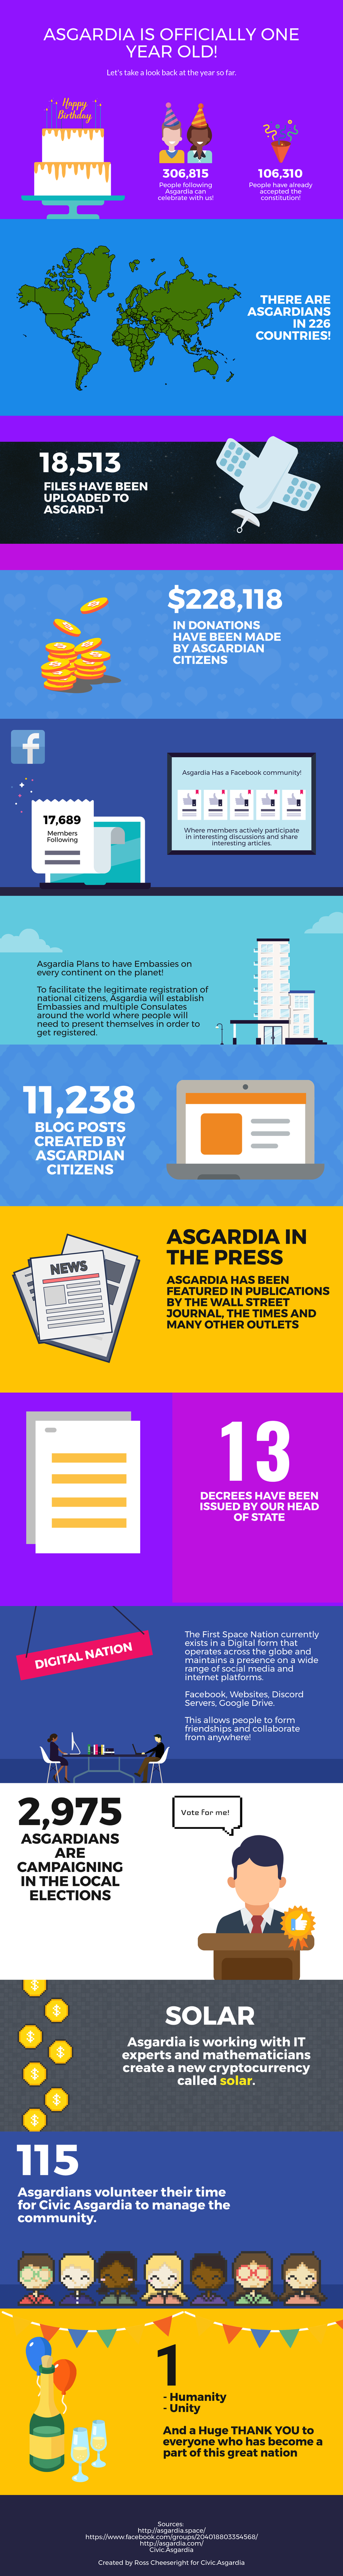 Happy founding day, asgardia!